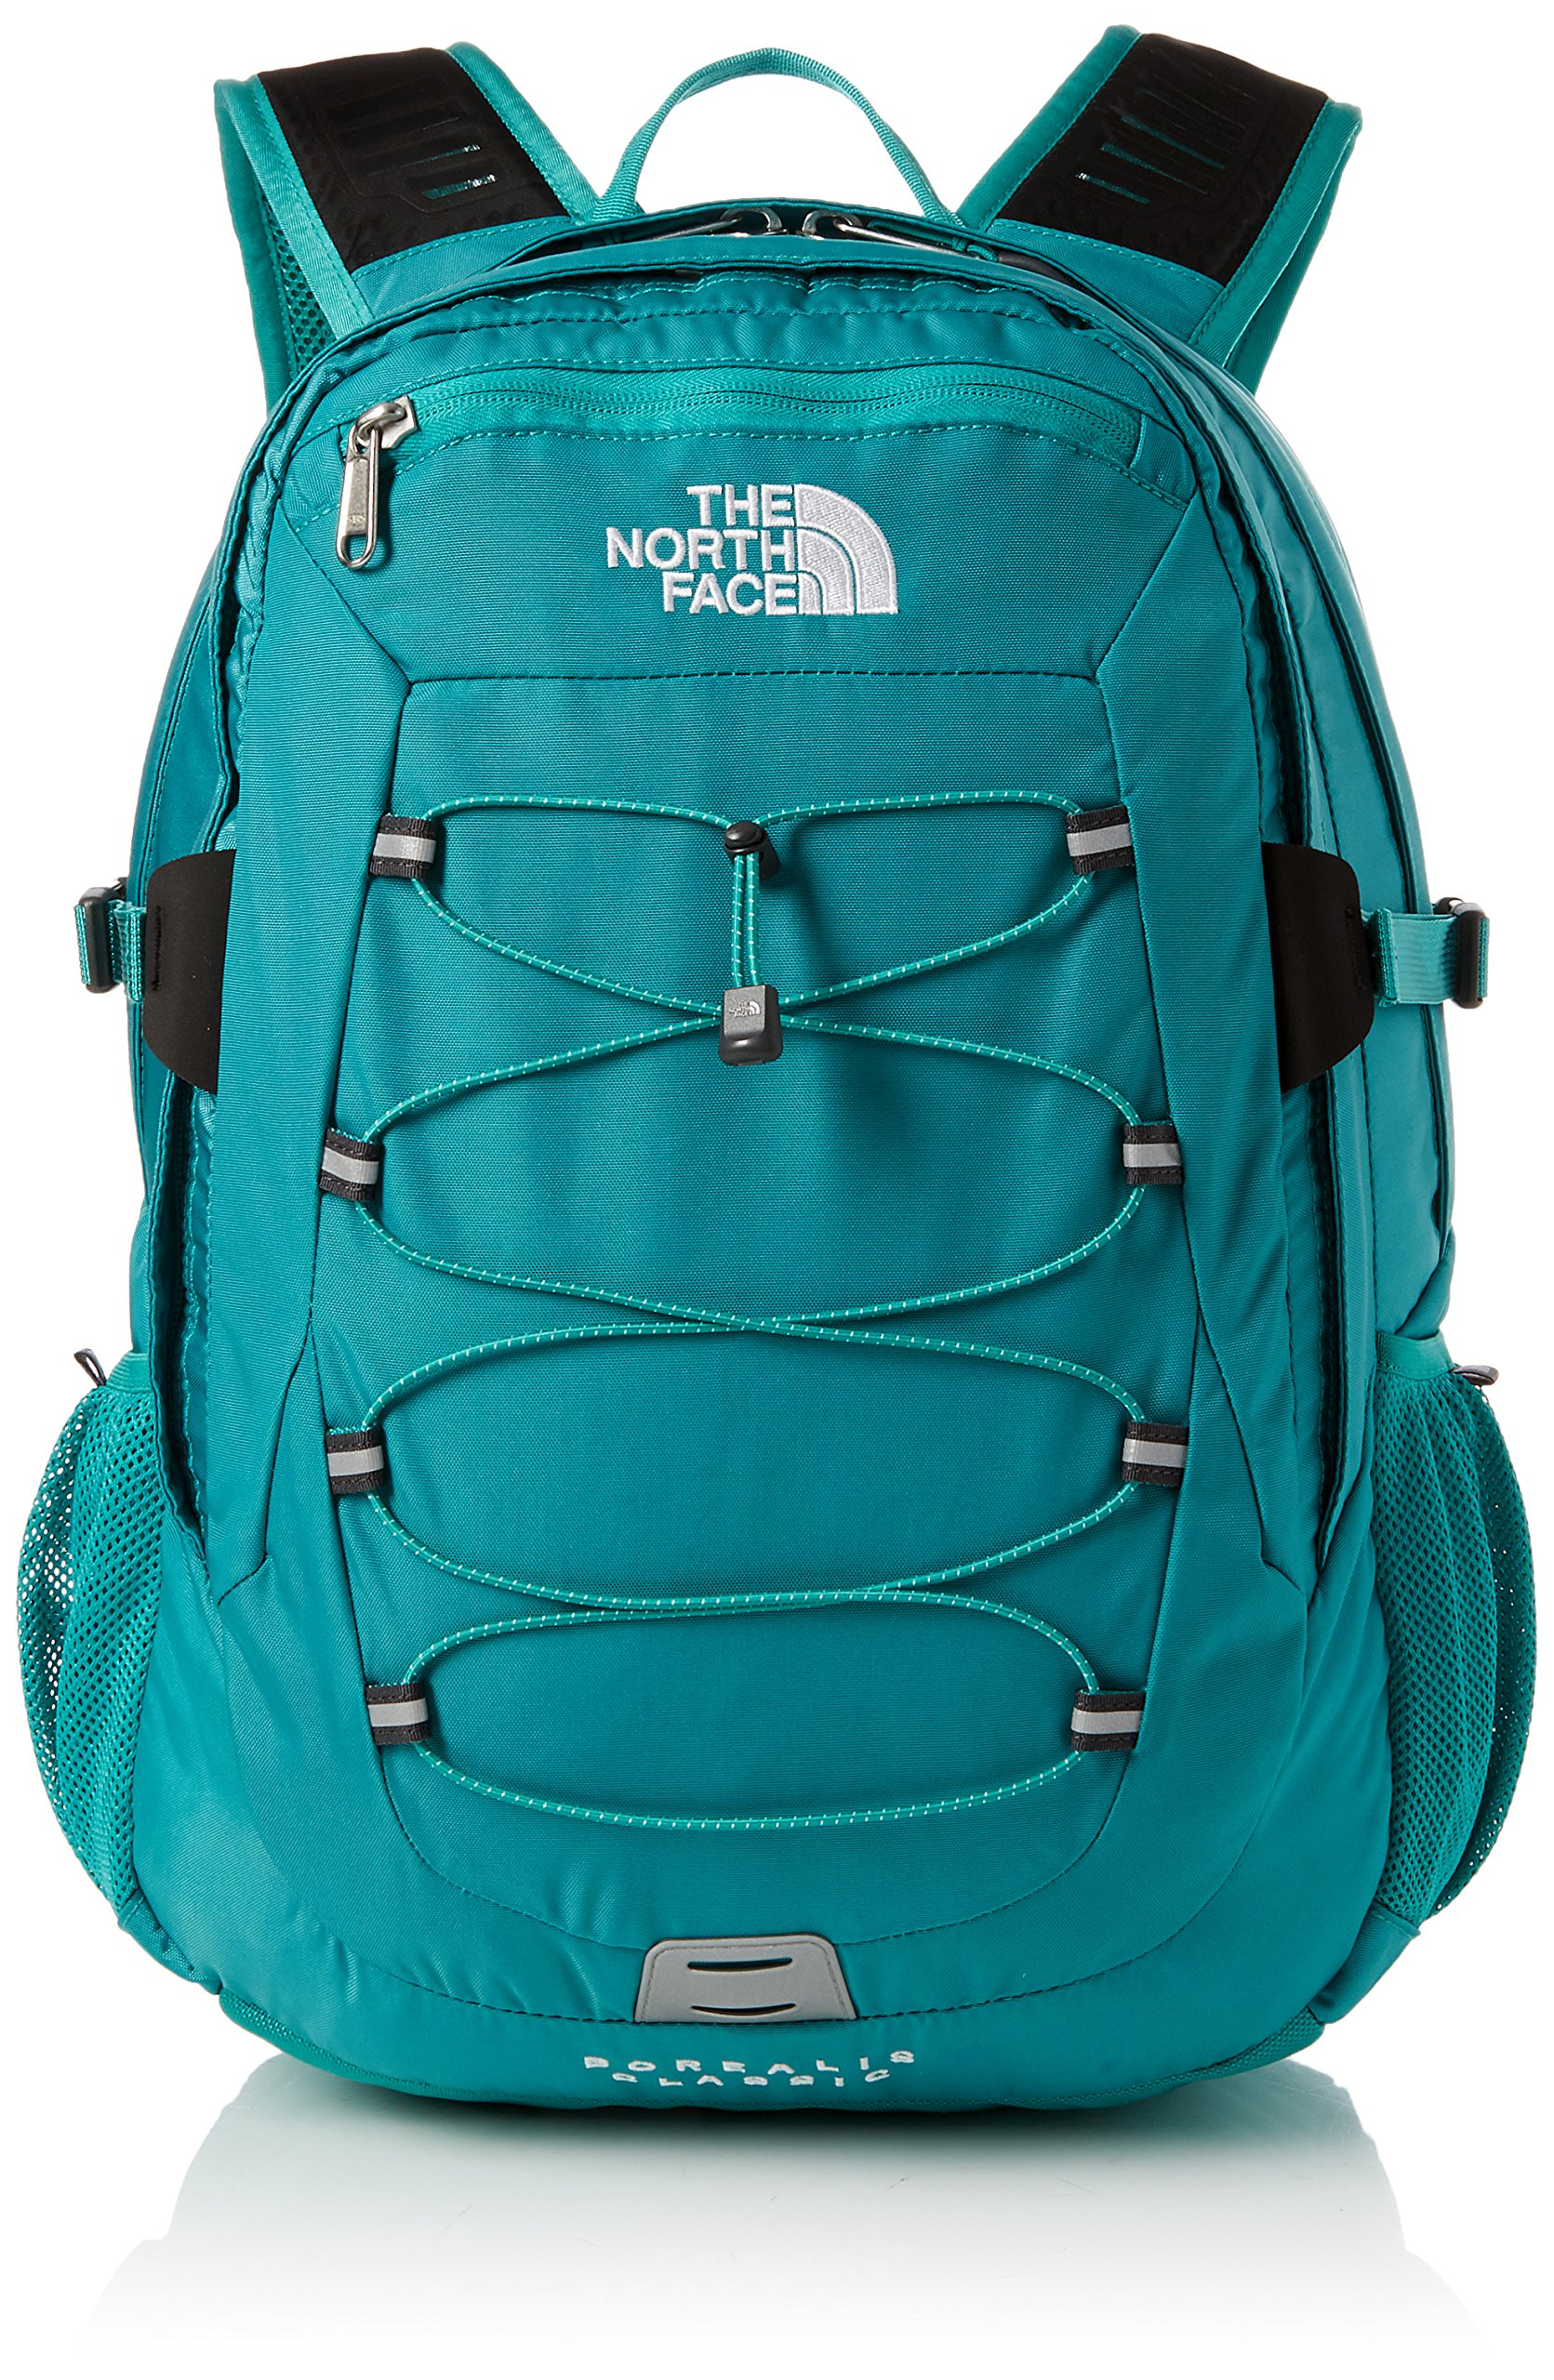 91bpkphrsDL - The North Face  Borealis Men's Outdoor Backpack